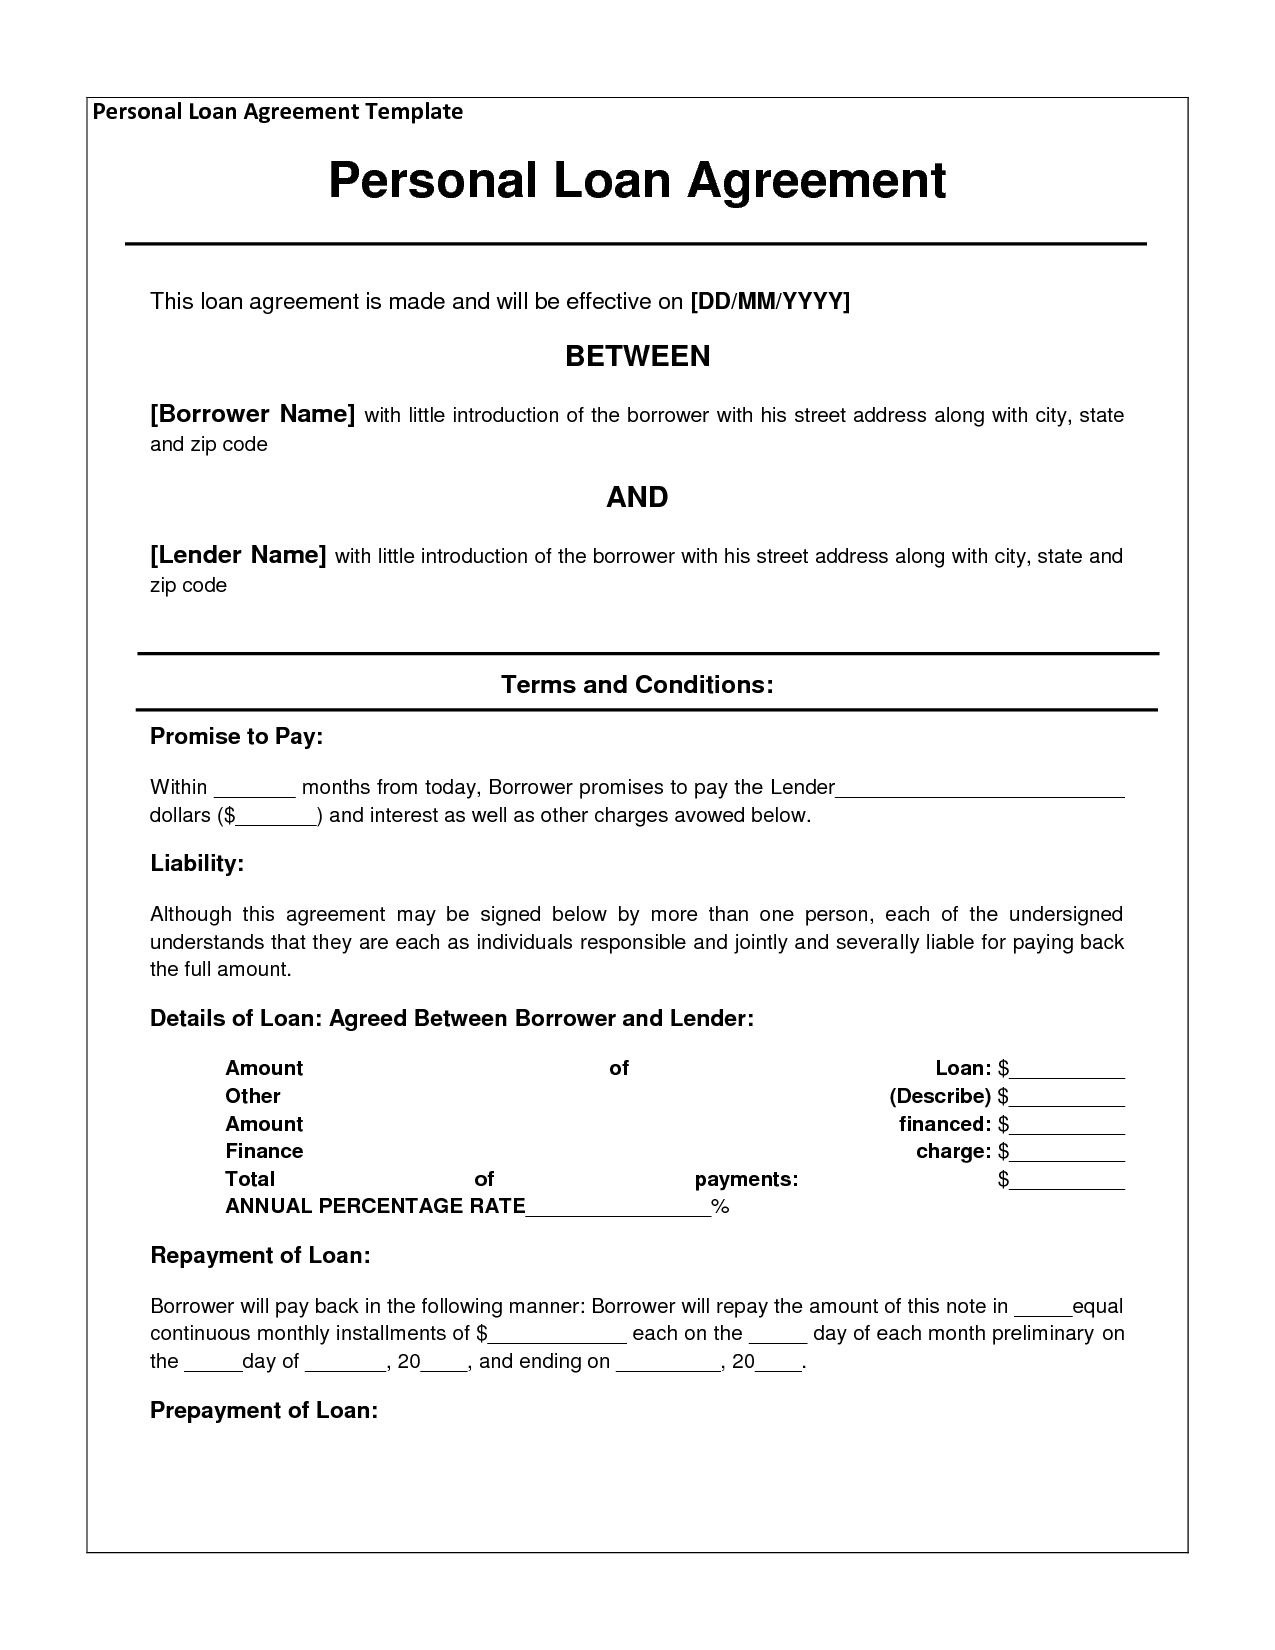 Personal Loan Template Letter - Free Personal Loan Agreement form Template $1000 Approved In 2